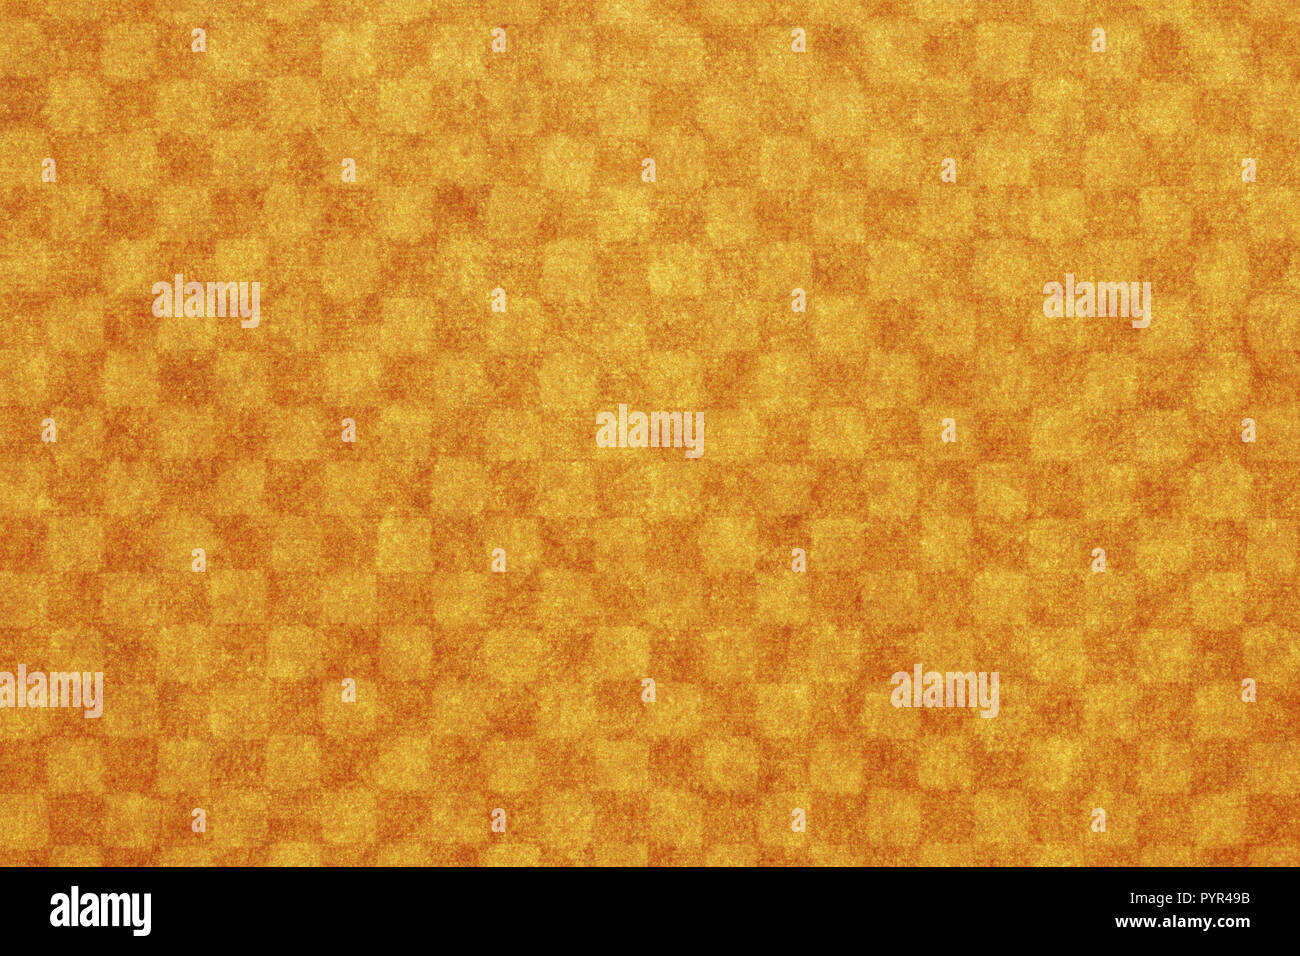 Japanese new year brown checkered pattern paper texture background Stock Photo